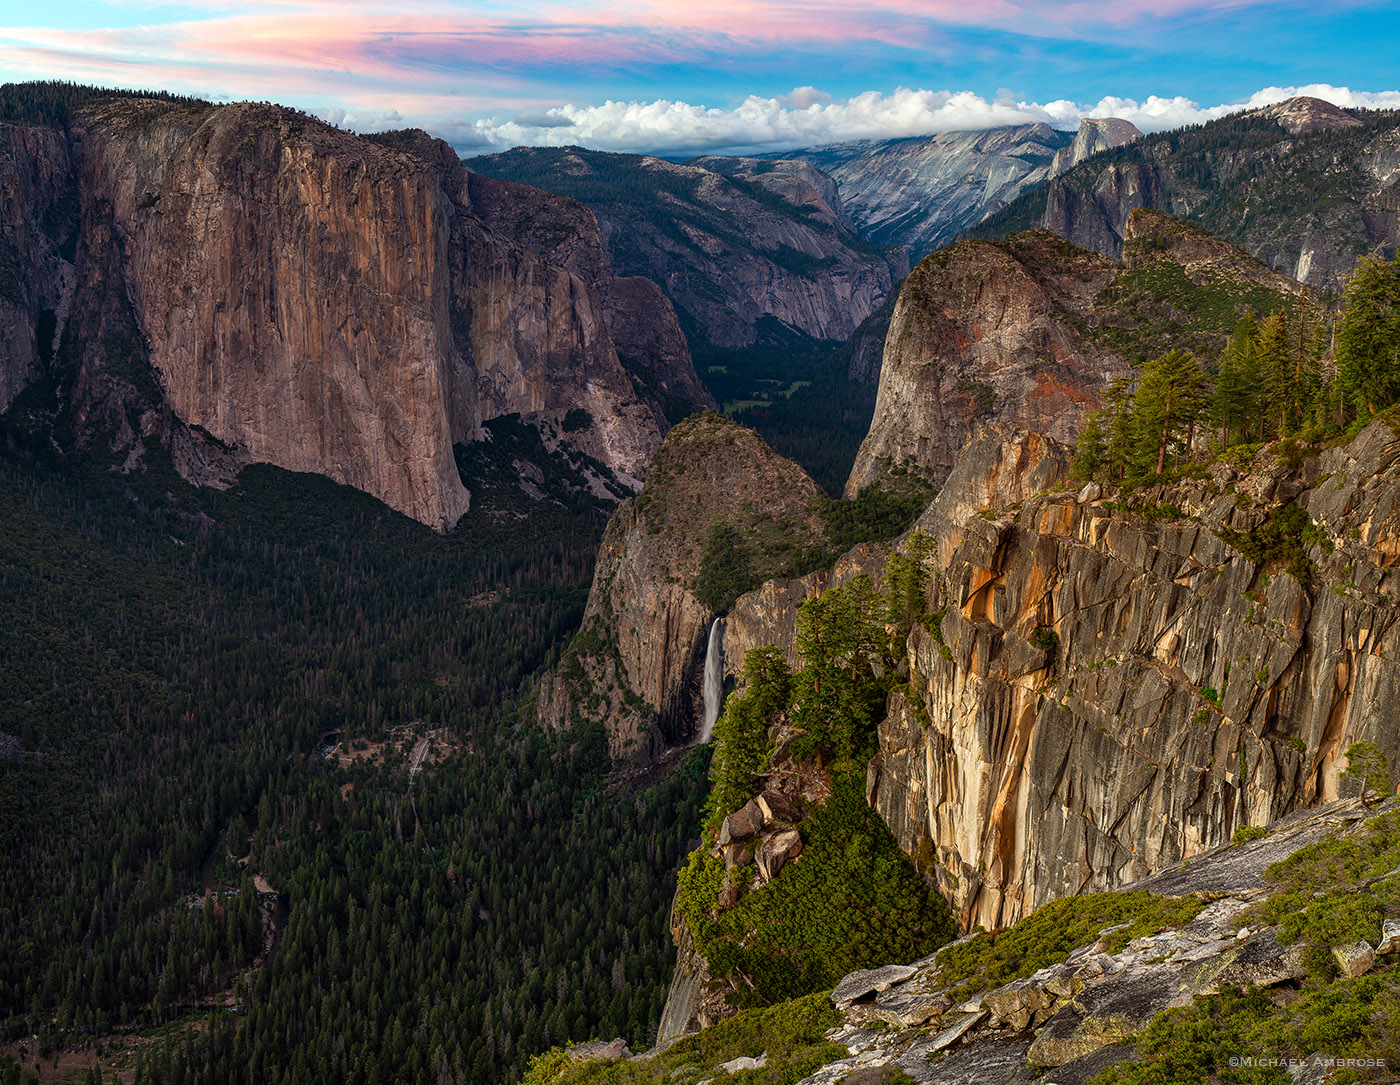 From Yosemite's Stanford Point, the view includes an eagle-eye spy of Bridalveil Fall, Sentinel Rocks, El Cap, Half Dome, and distant Tenaya Canyon.